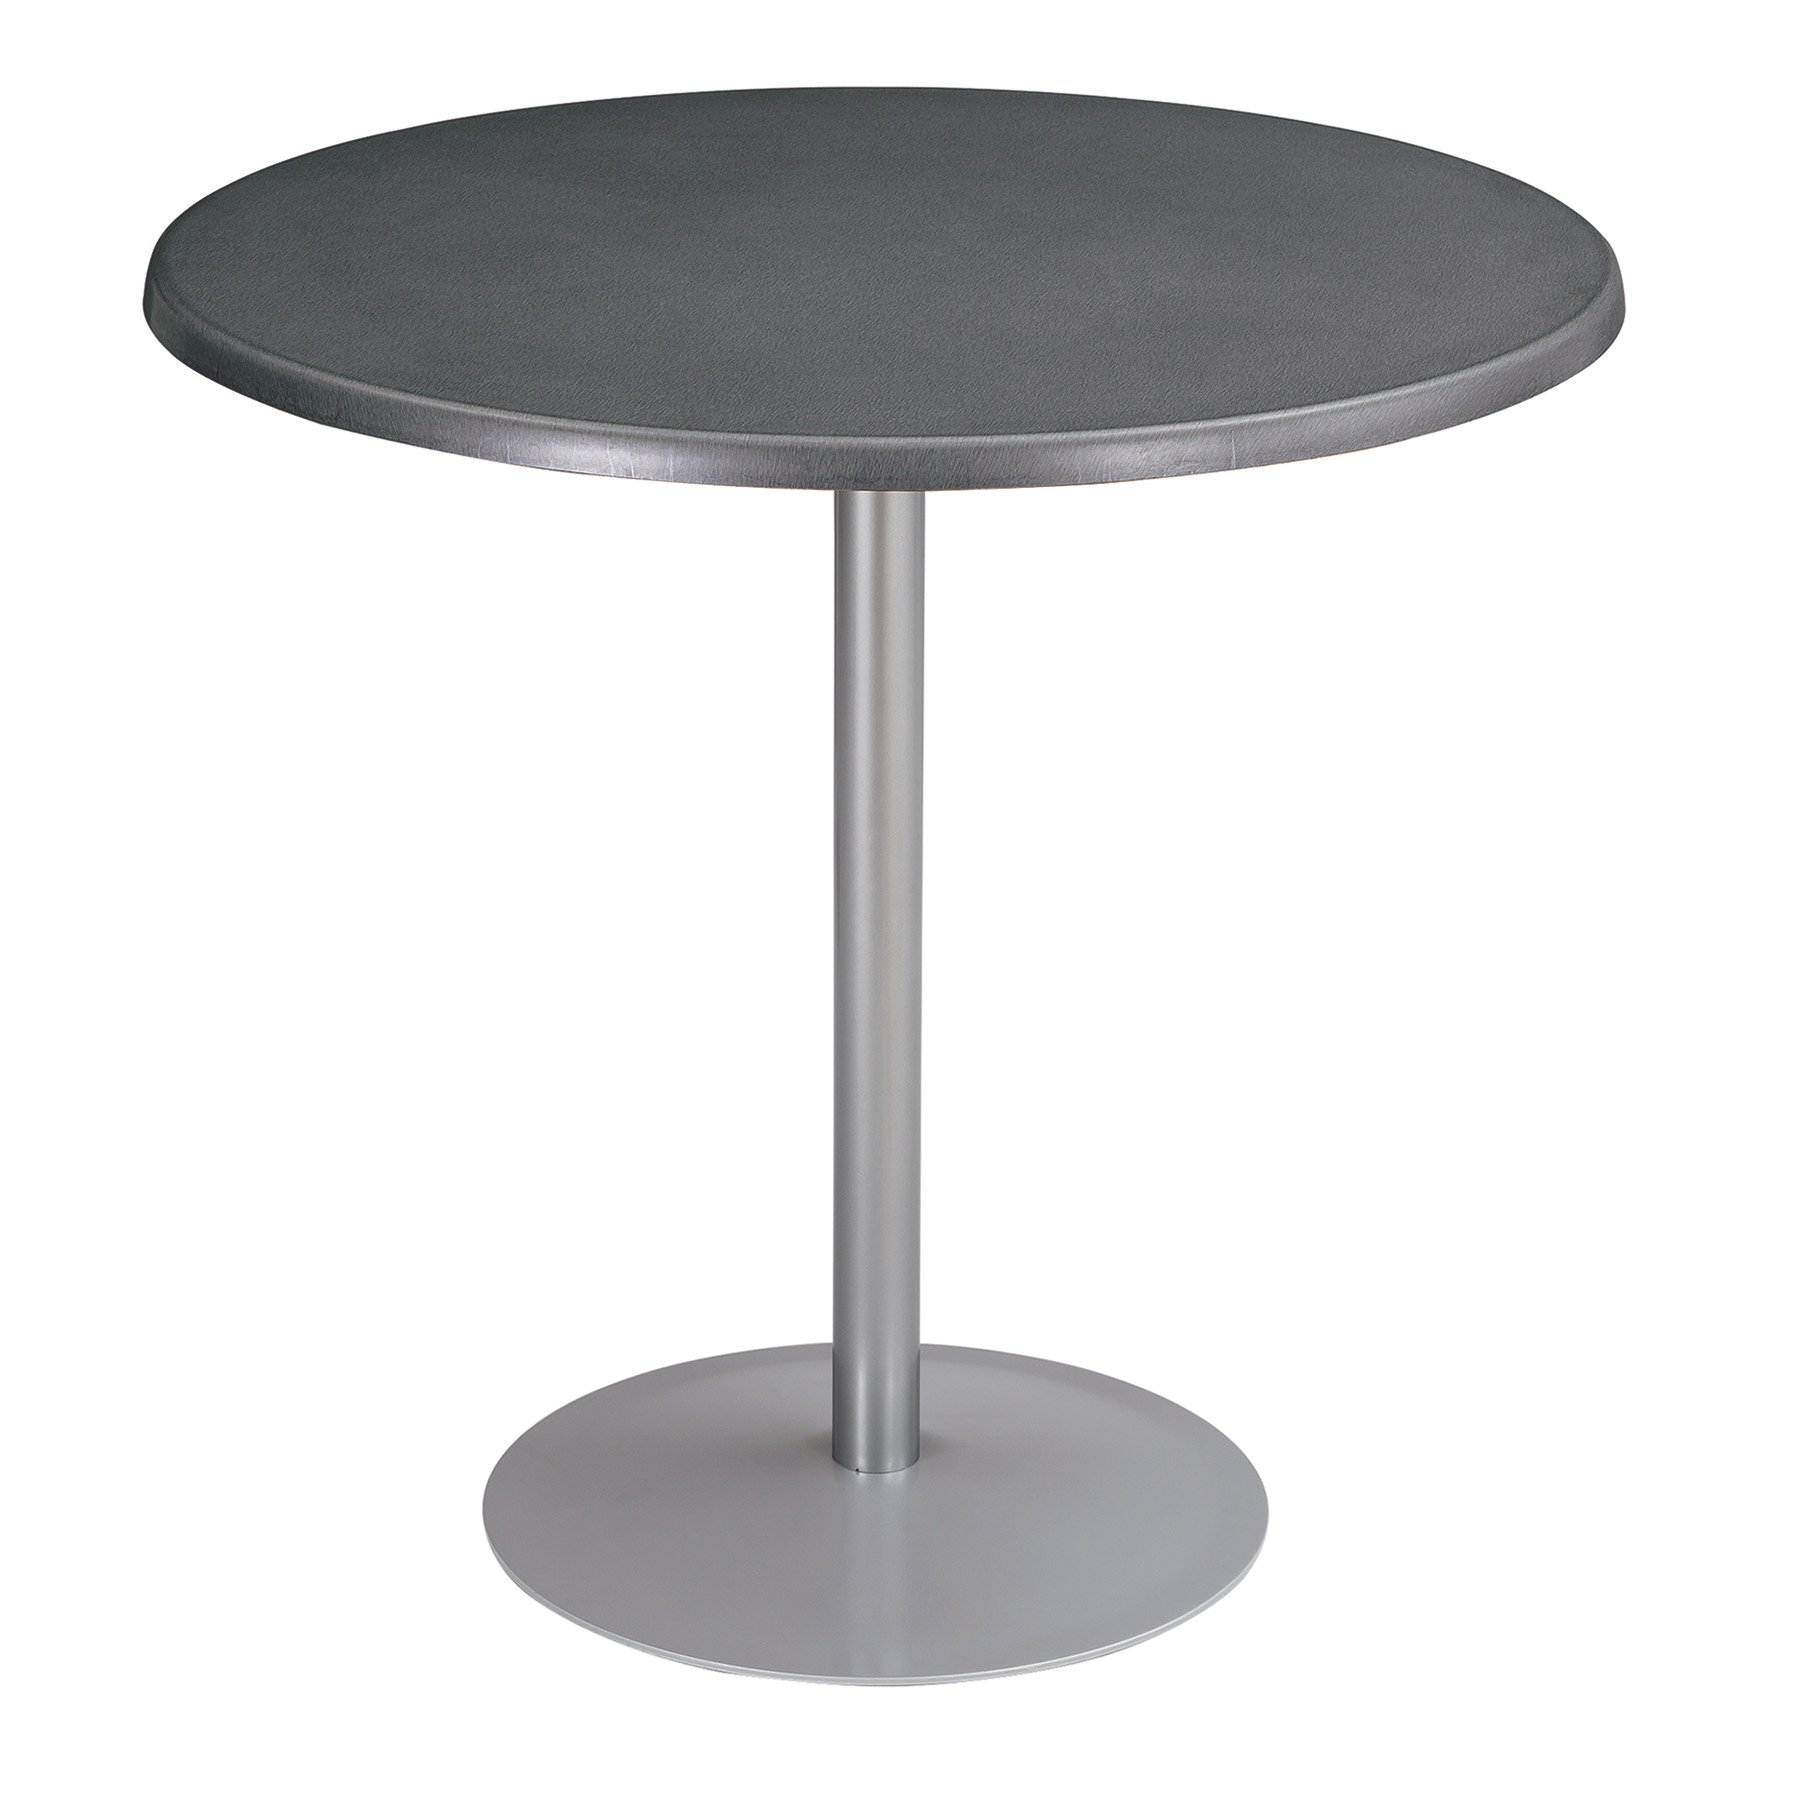 Safco Products 2492AC Entourage Table Top, 32'' Round (Base sold separately), Anthracite by Safco